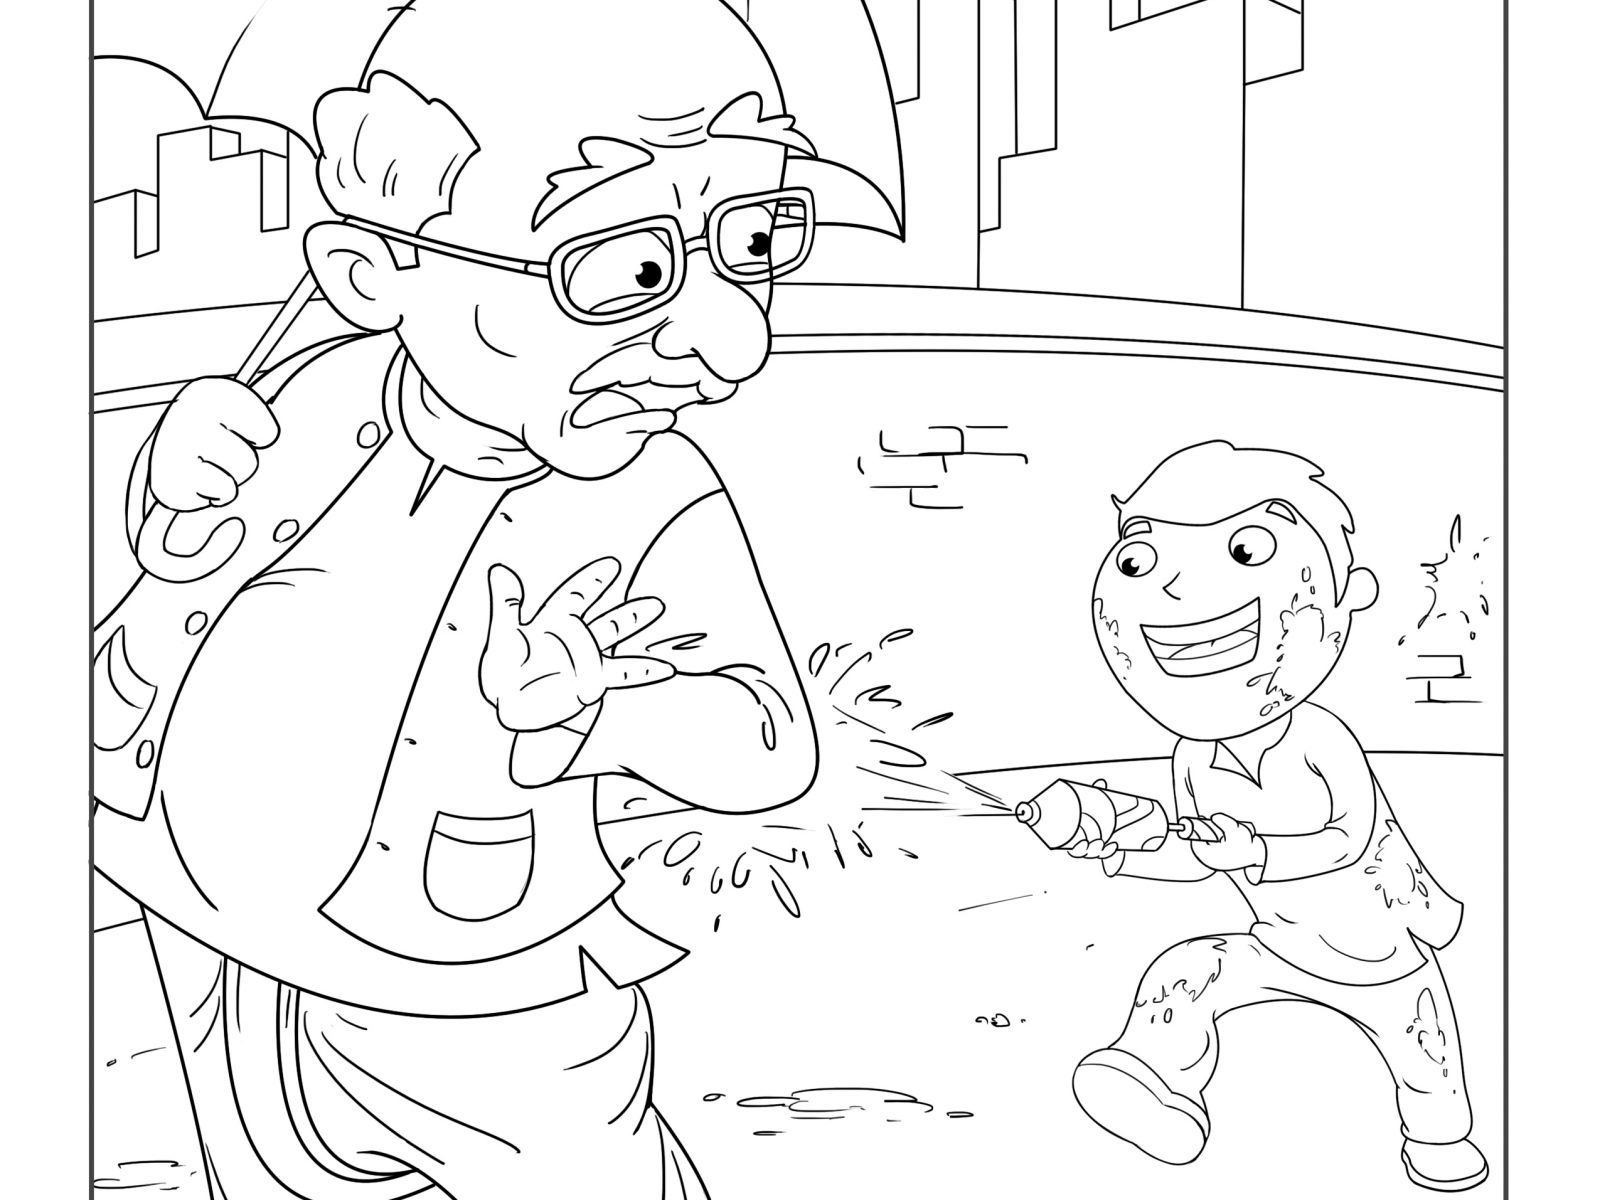 Holi Coloring Pages At Getcolorings